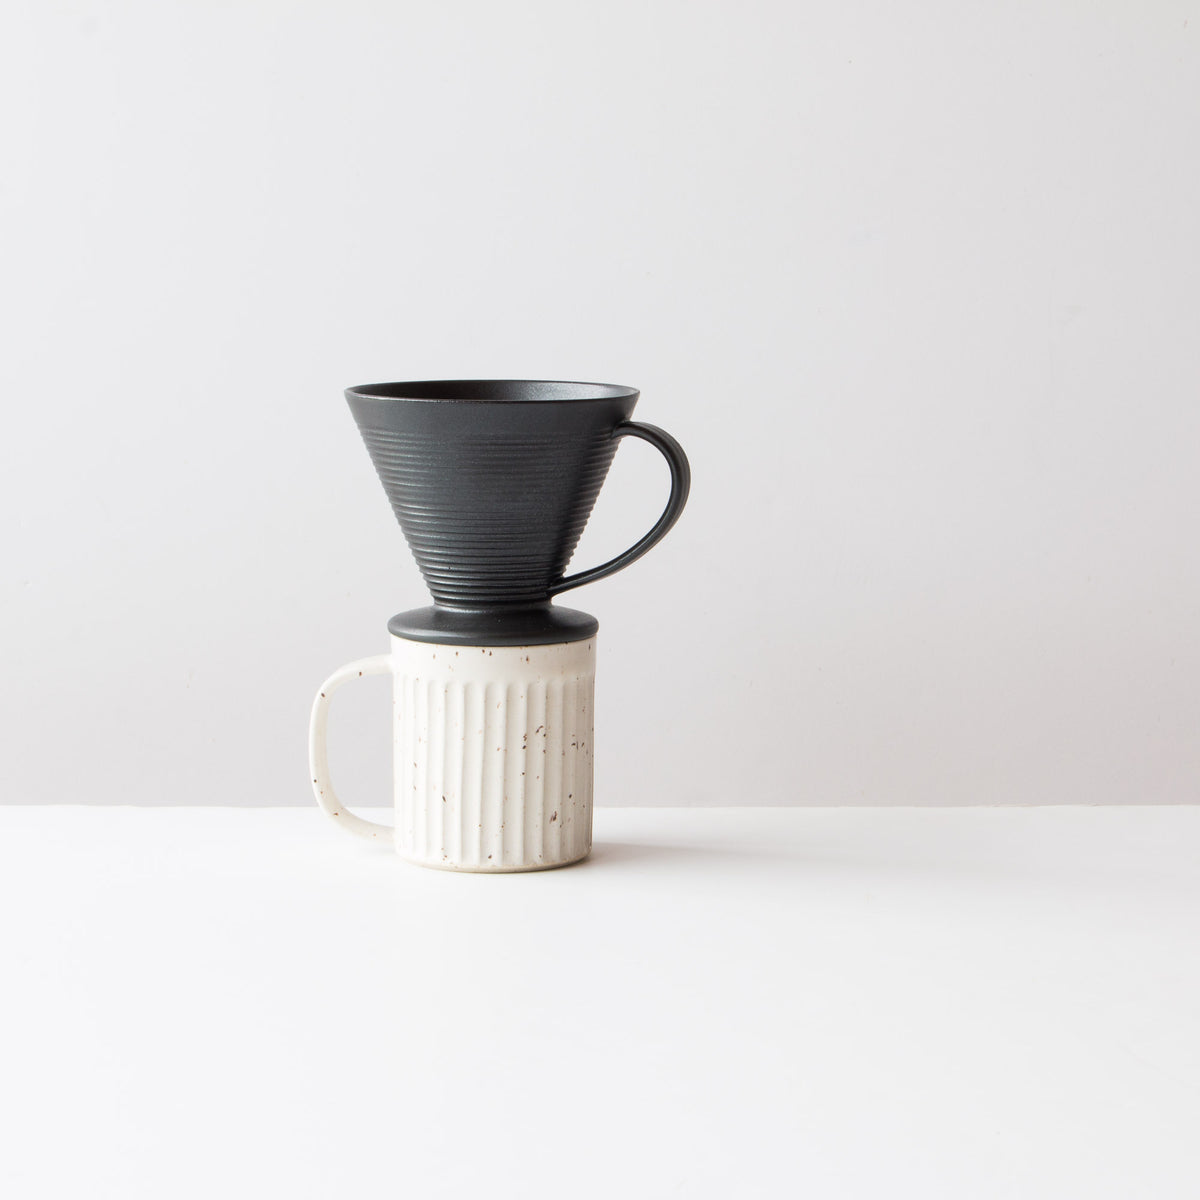 Black - Handmade Ceramic Pour-Over Coffee Dripper Shown with Coffee Mug - Sold by Chic & Basta